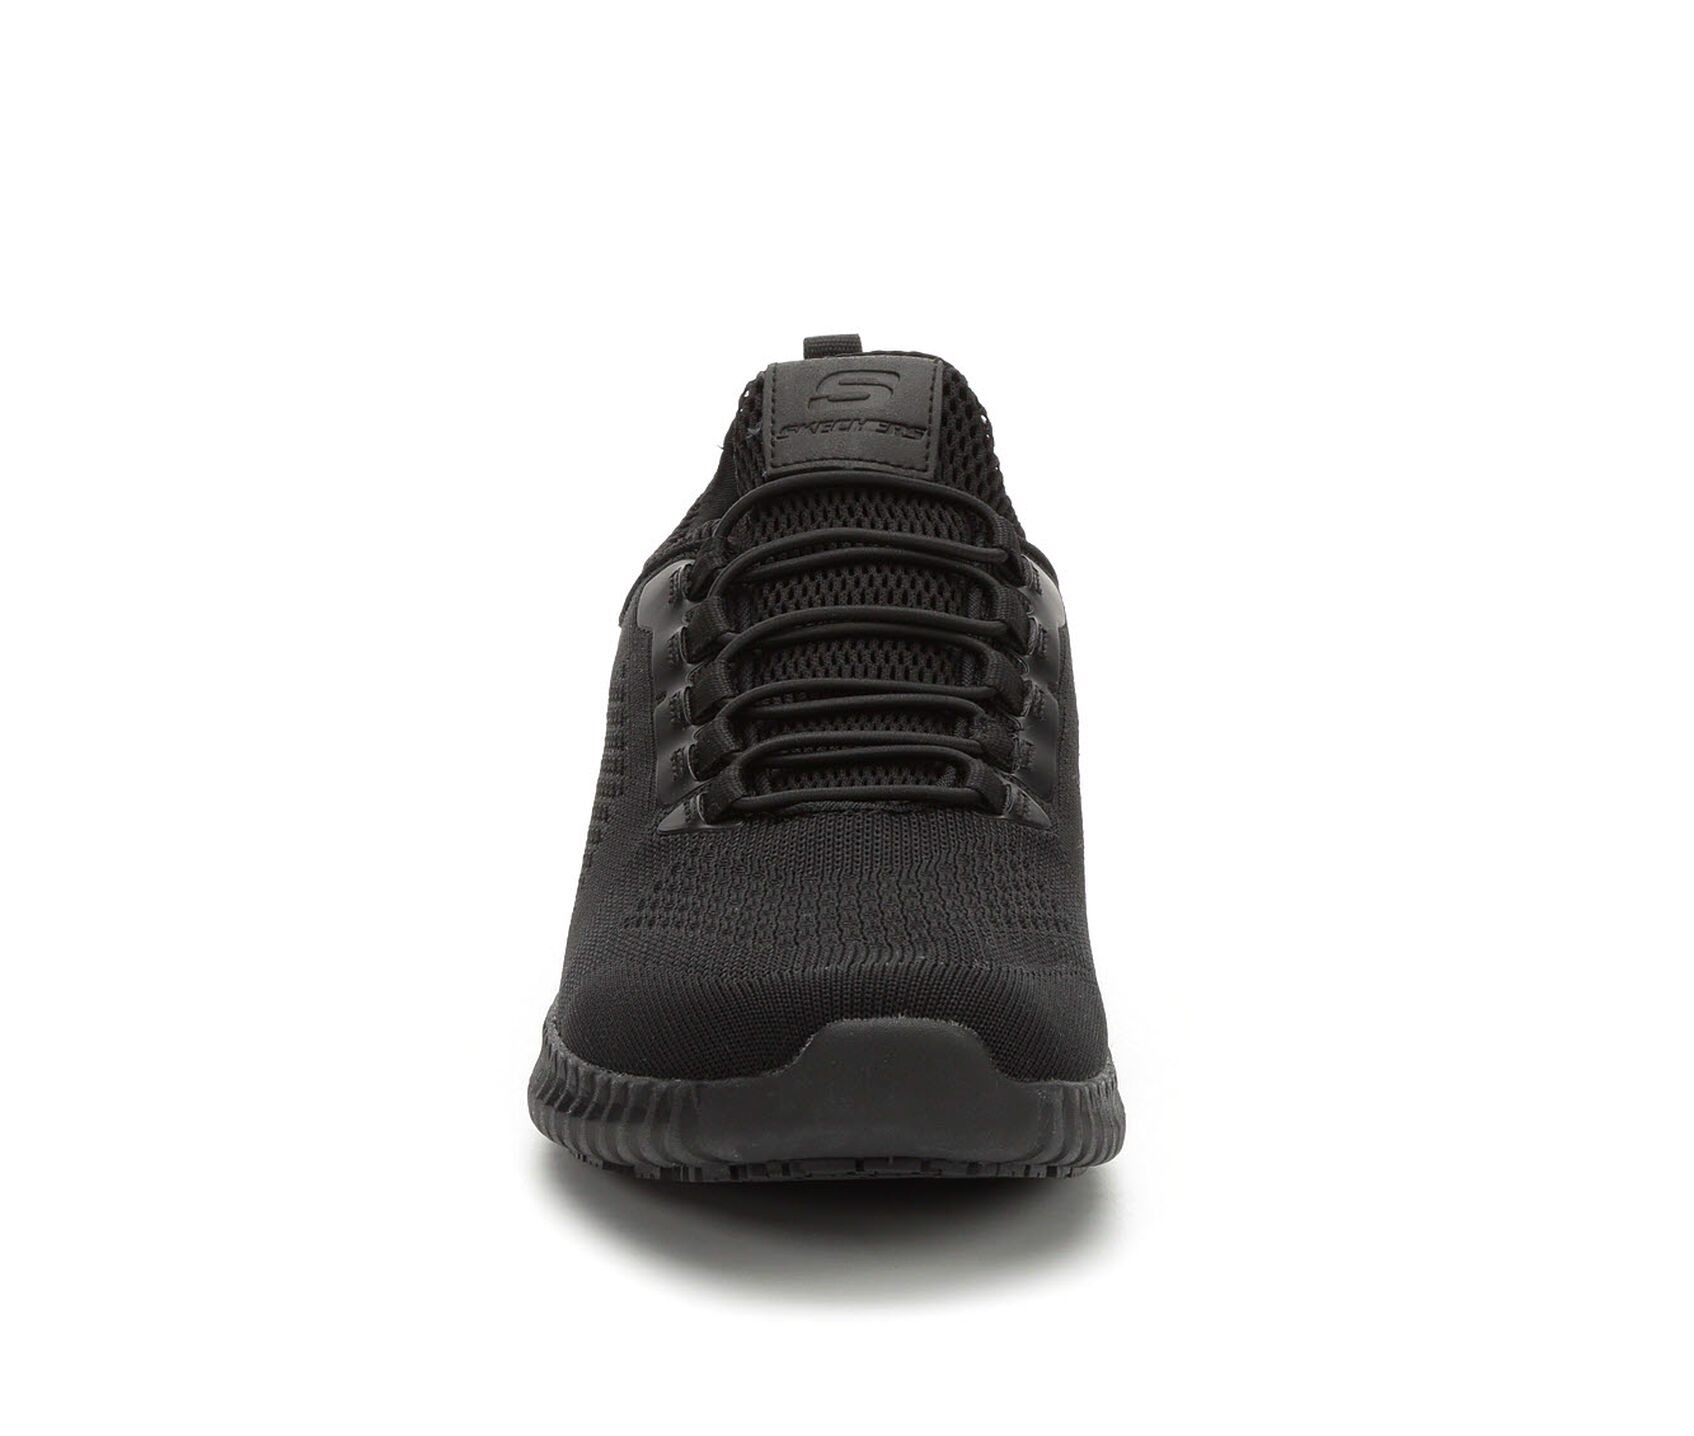 Giày Sneaker Skechers Cessnock Black Big Size Men 44 45 46 47 48 49 50